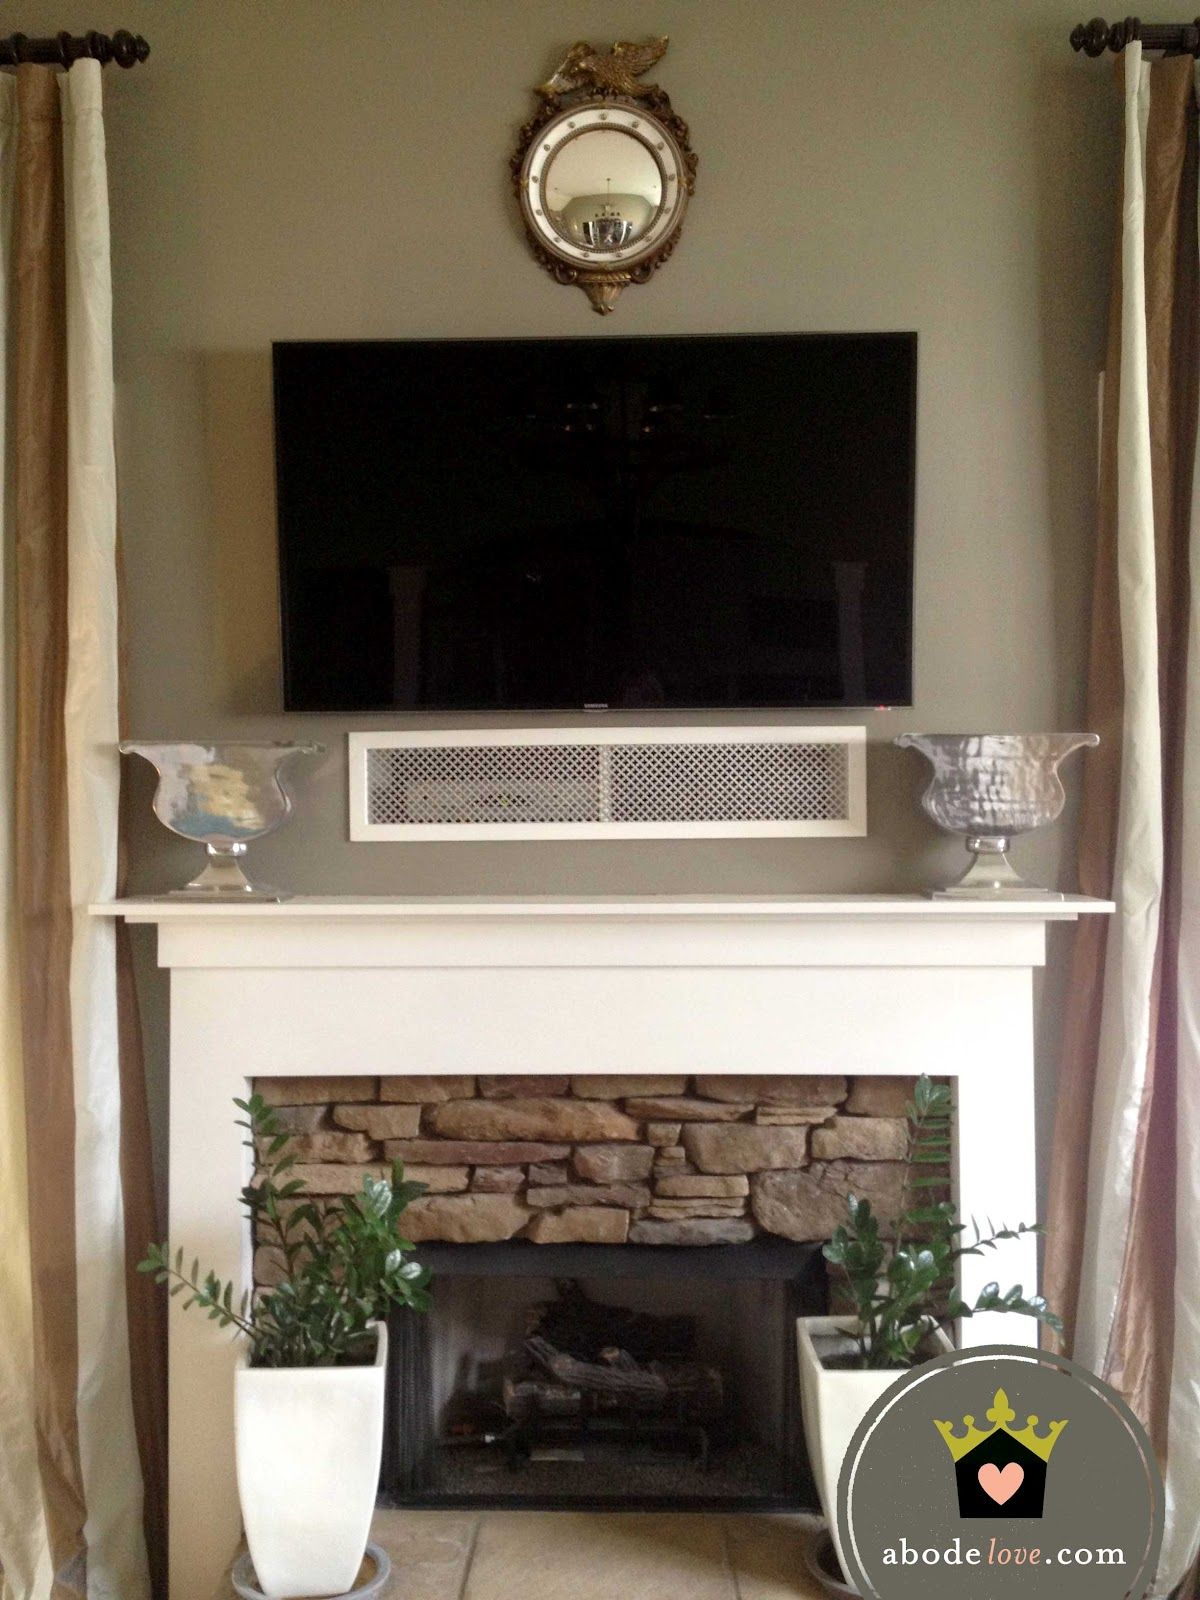 play systems behind a grill above the mantel and below the tv